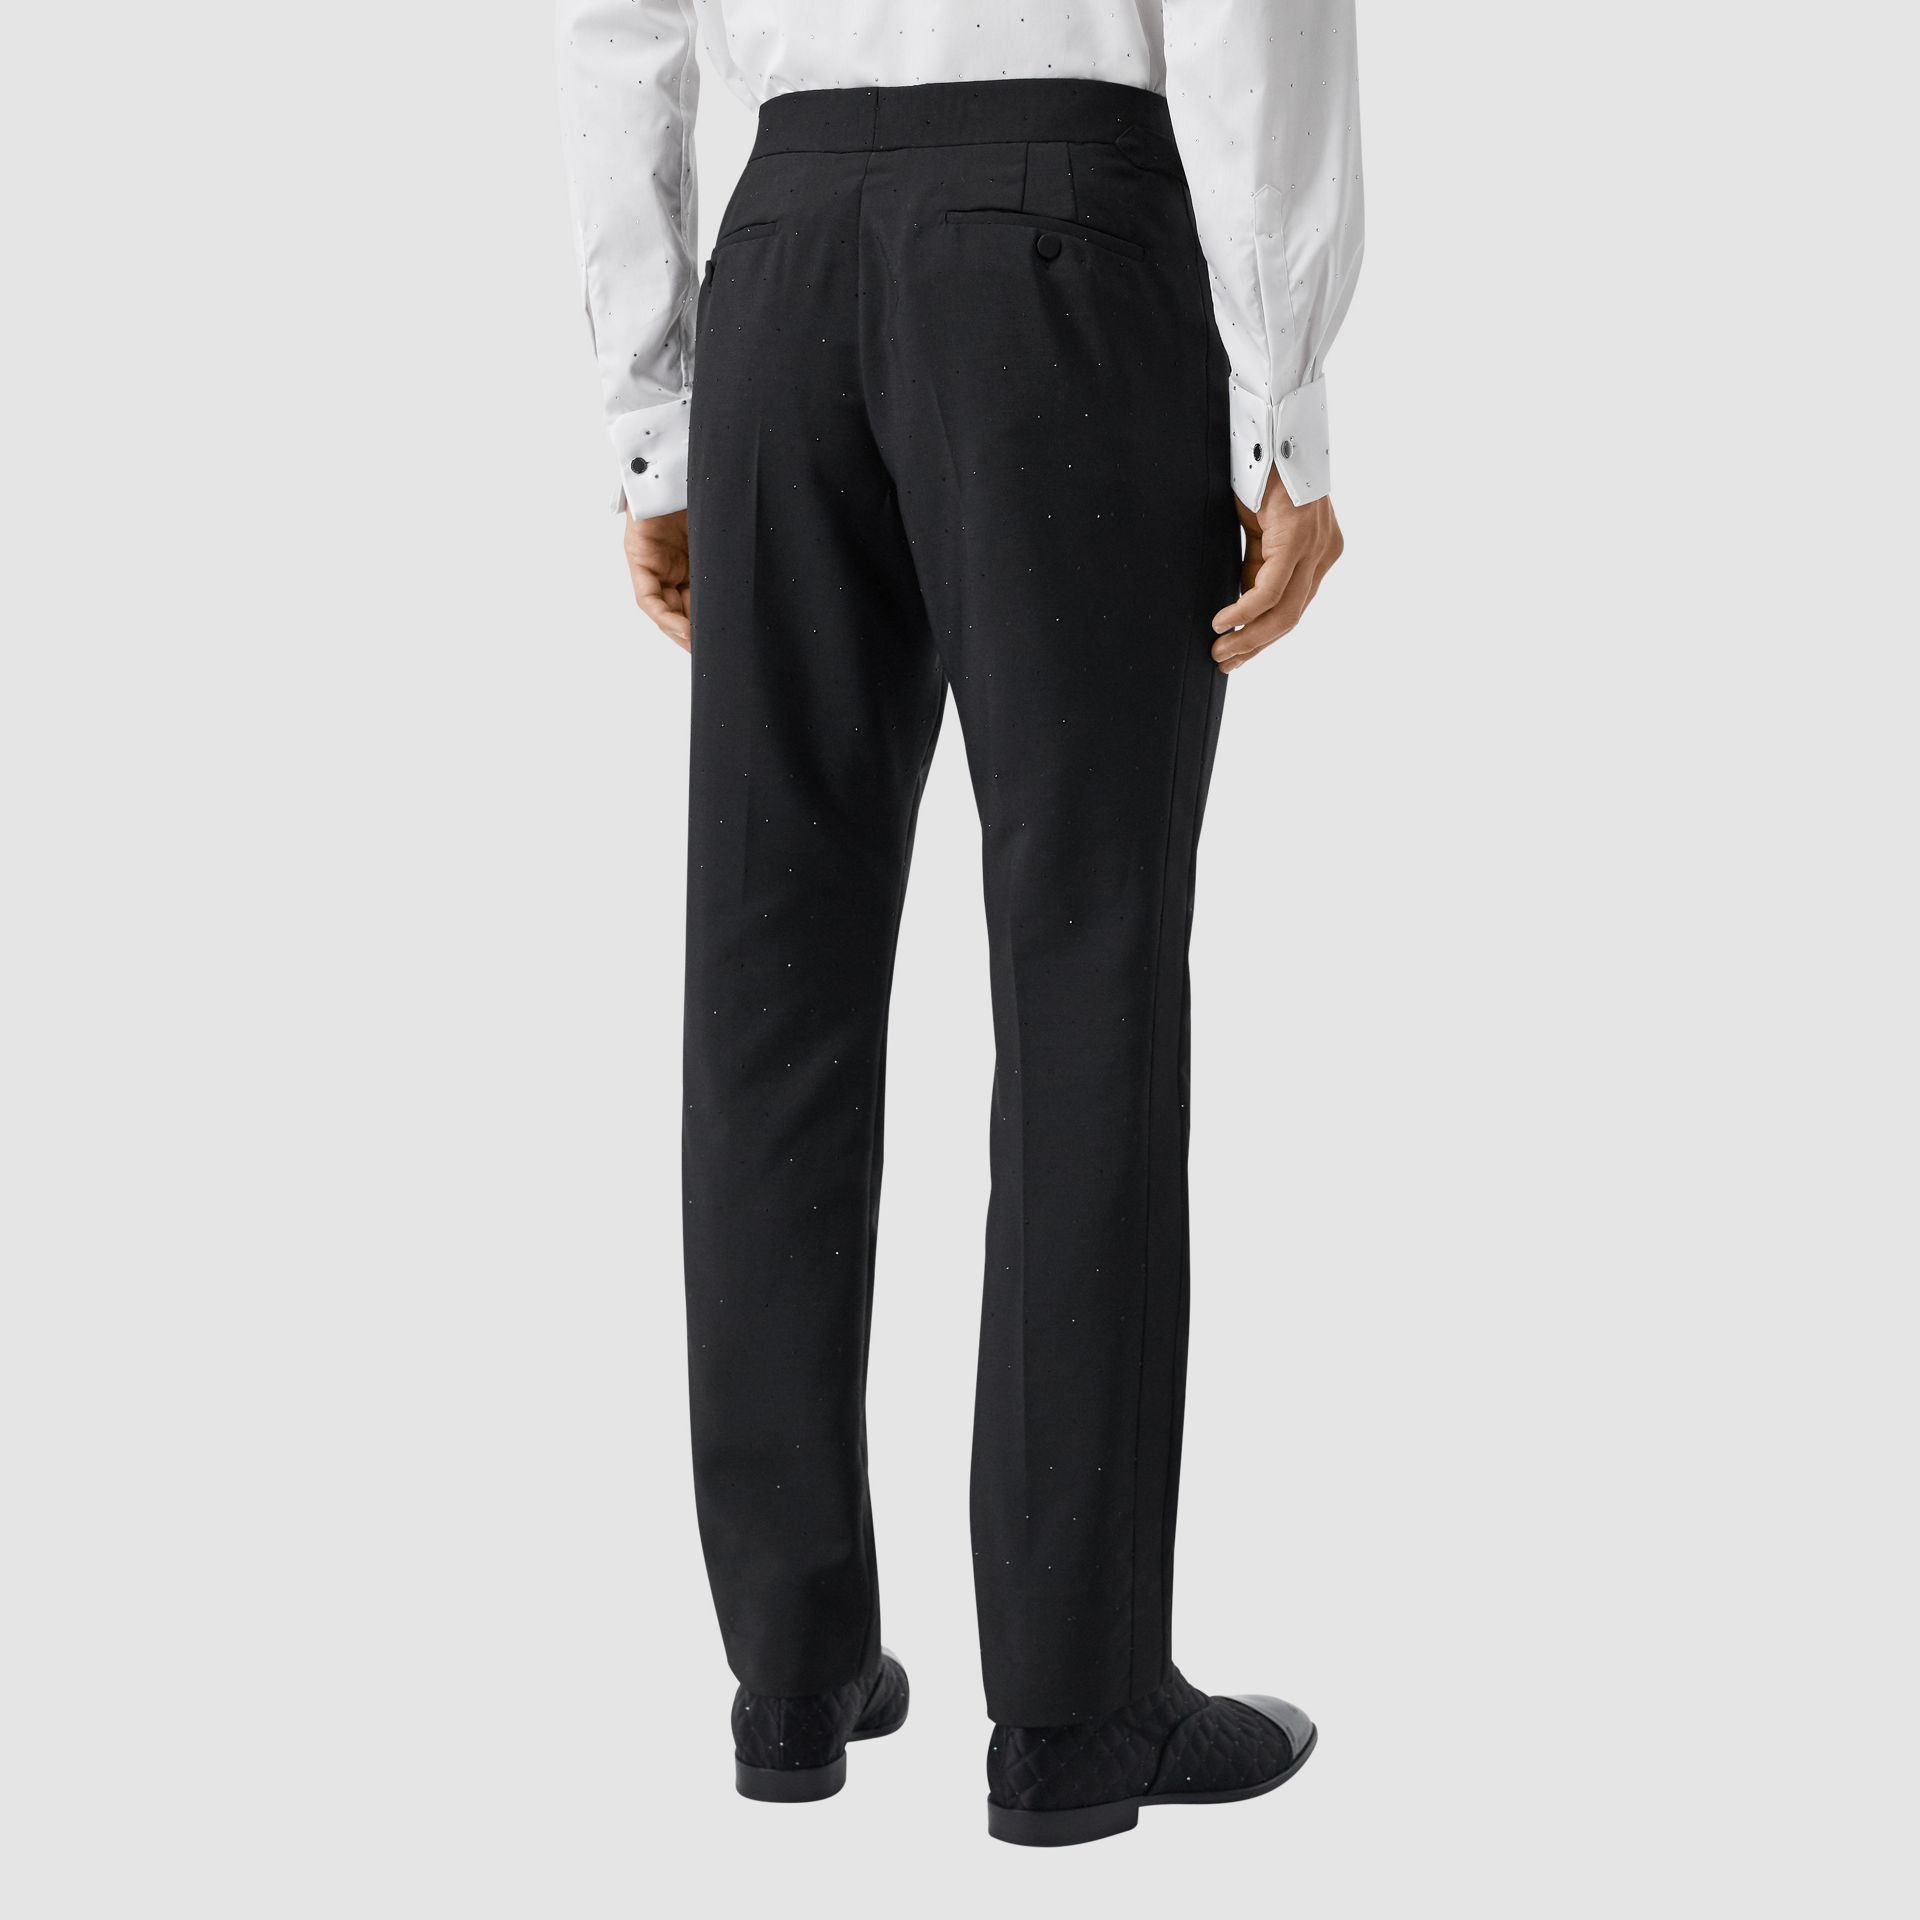 Classic Fit Embellished Mohair Wool Tailored Trousers in Black - Men | Burberry Hong Kong S.A.R - gallery image 2